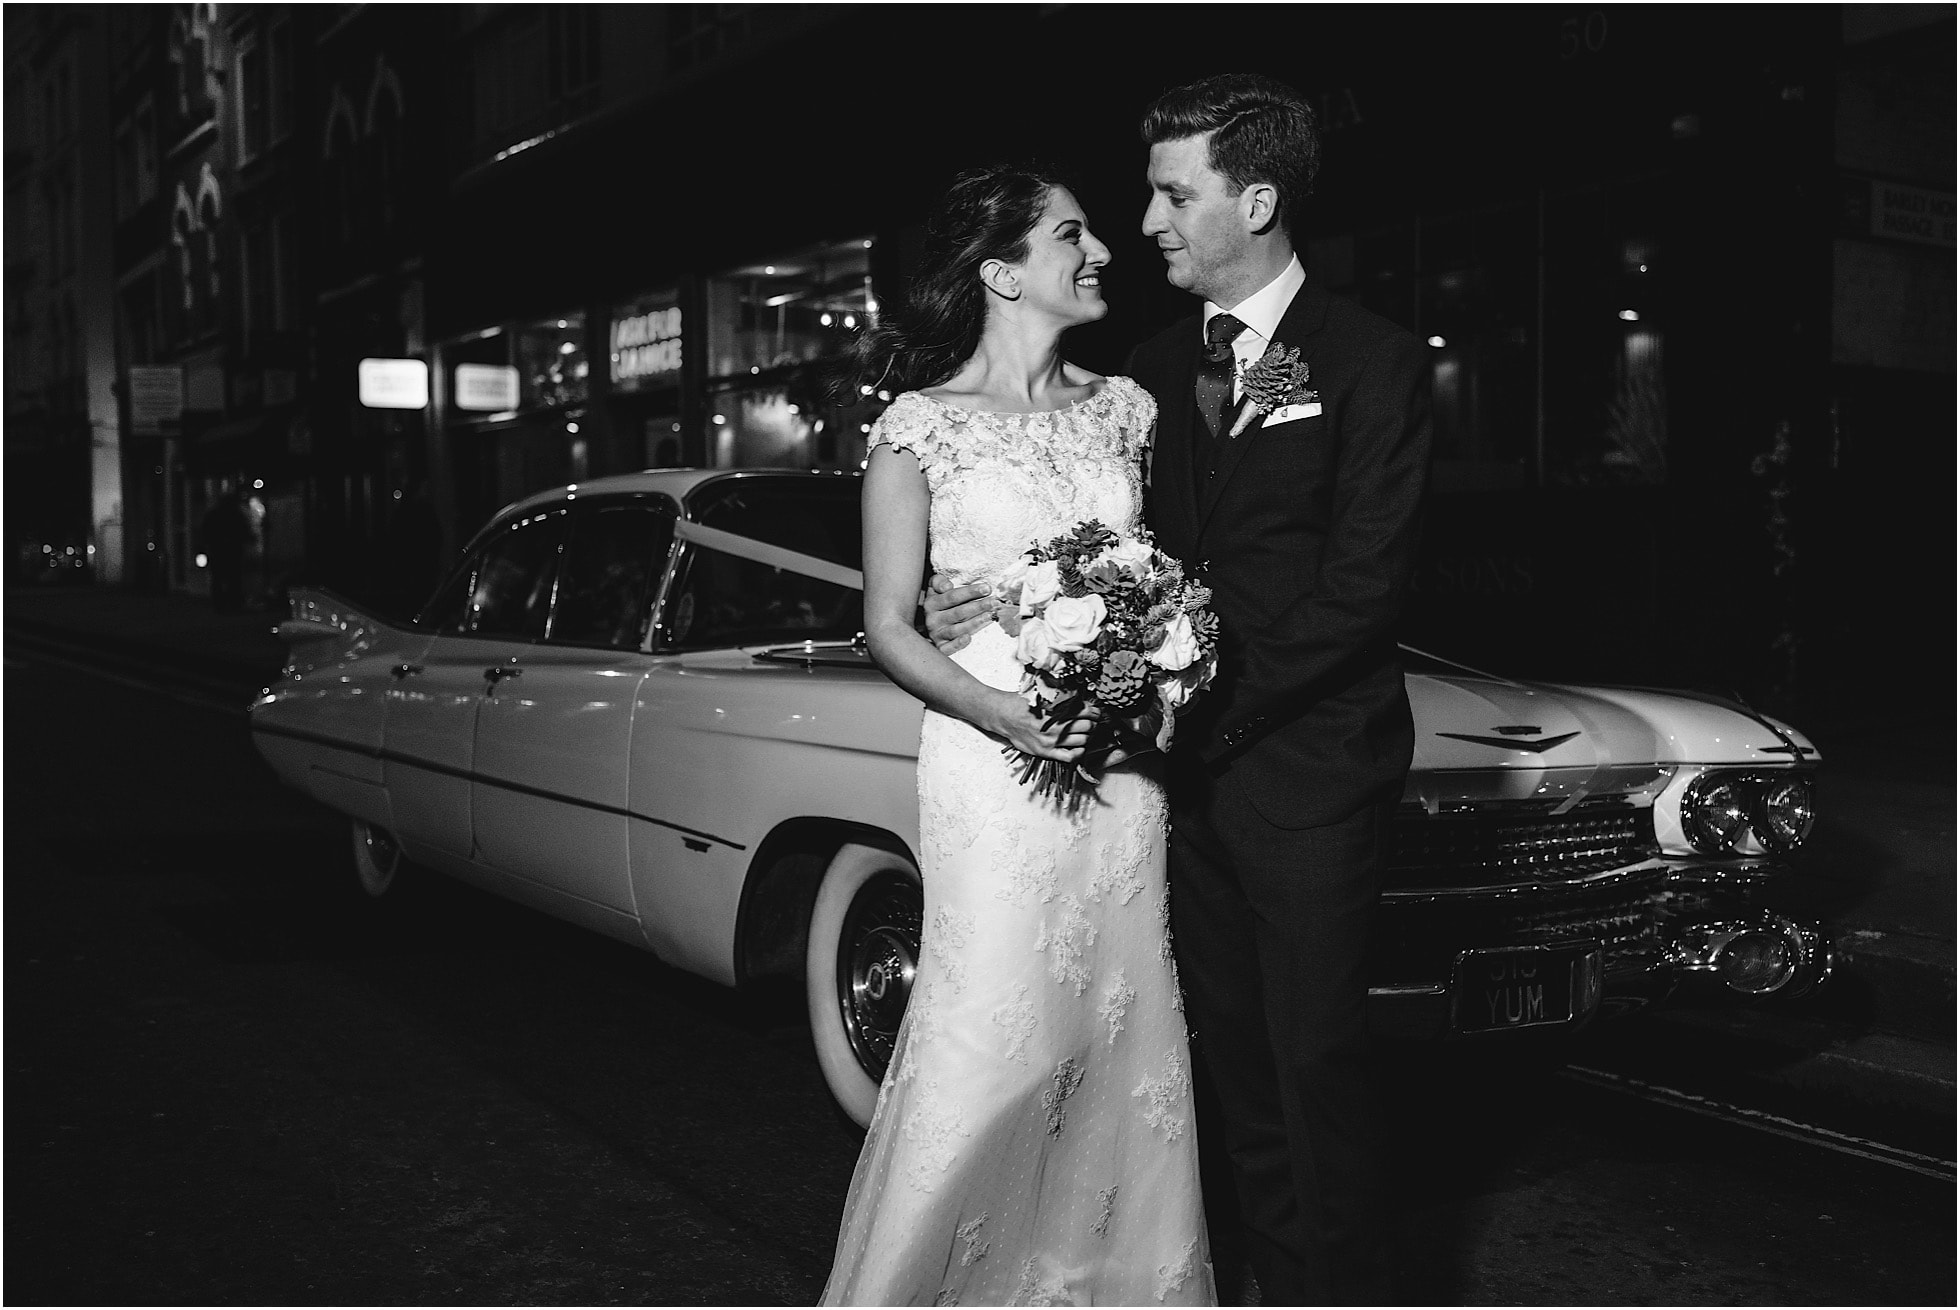 old american cadillac wedding photo